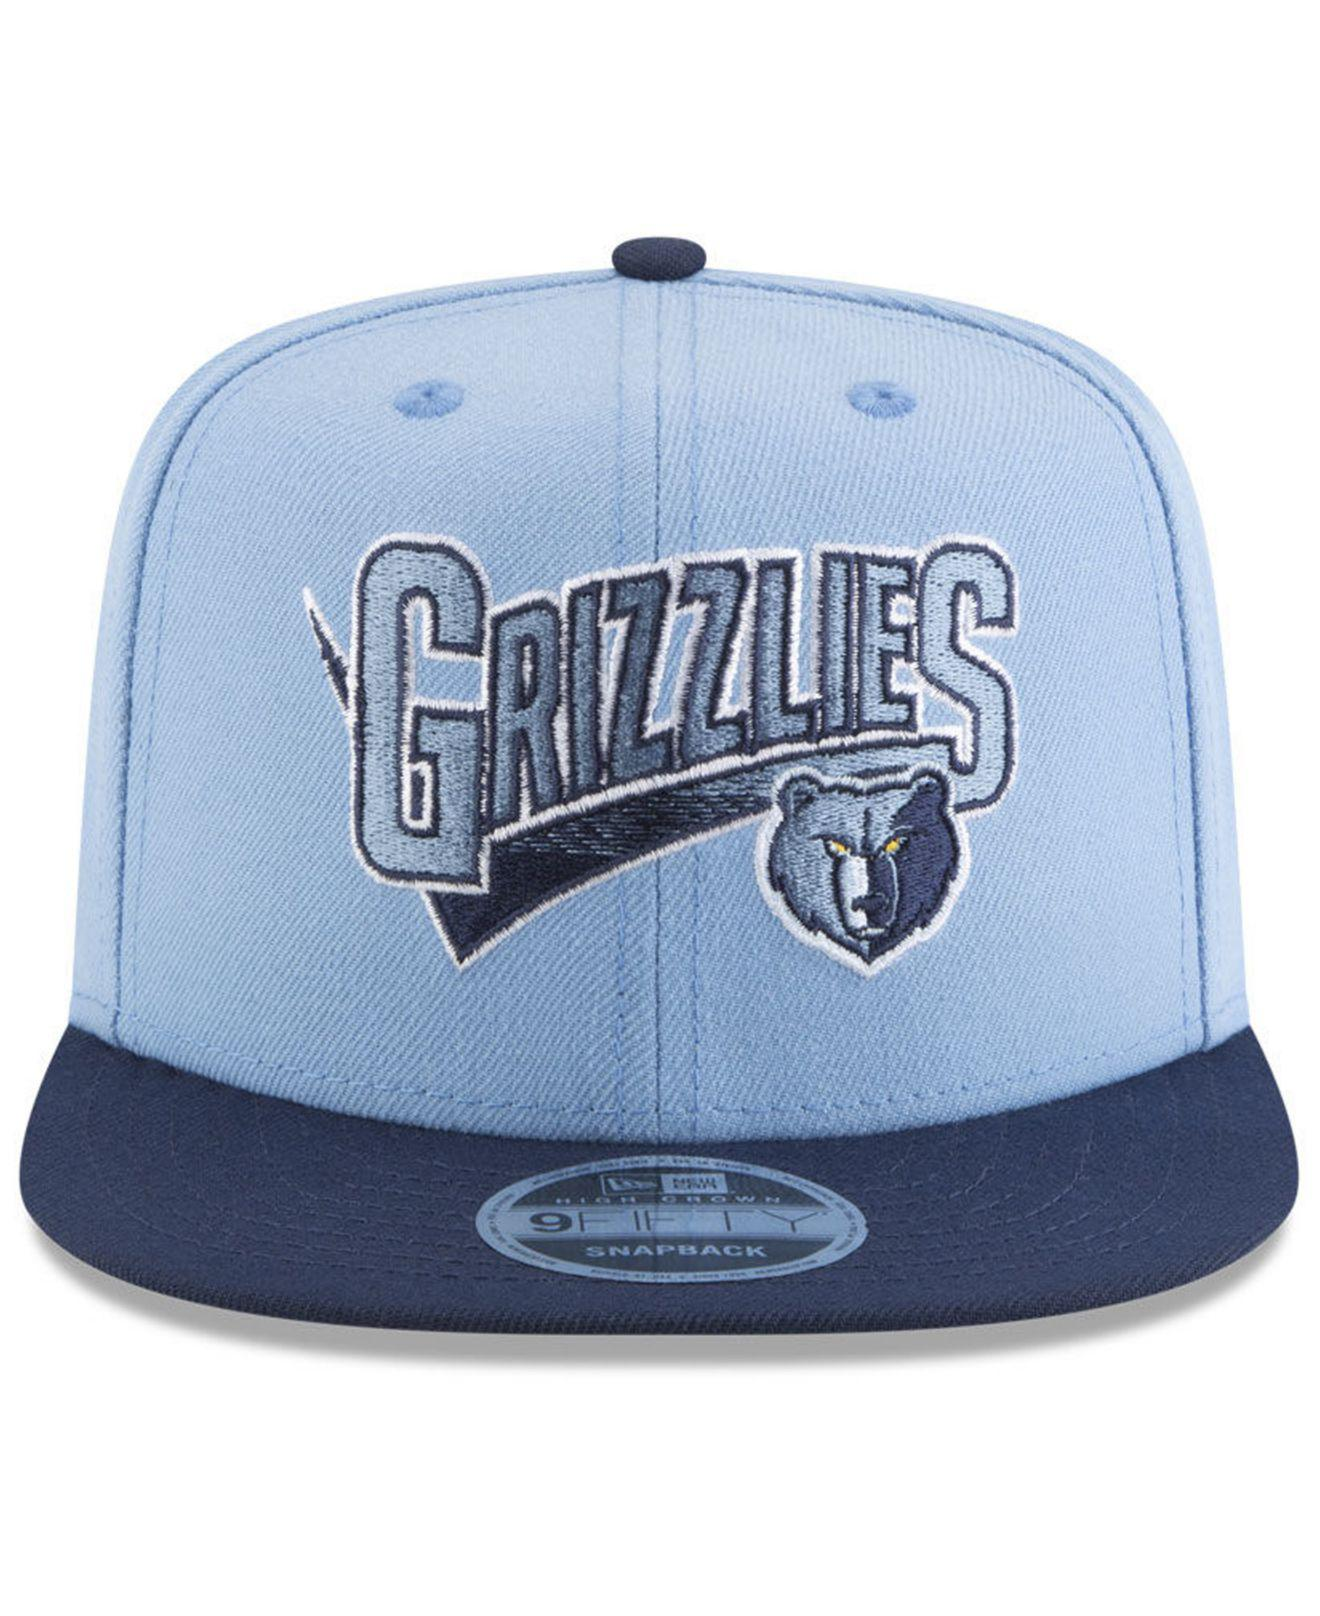 cd4a29d8929 ... get lyst ktz memphis grizzlies retro tail 9fifty snapback cap in blue  for men 2d298 f830b